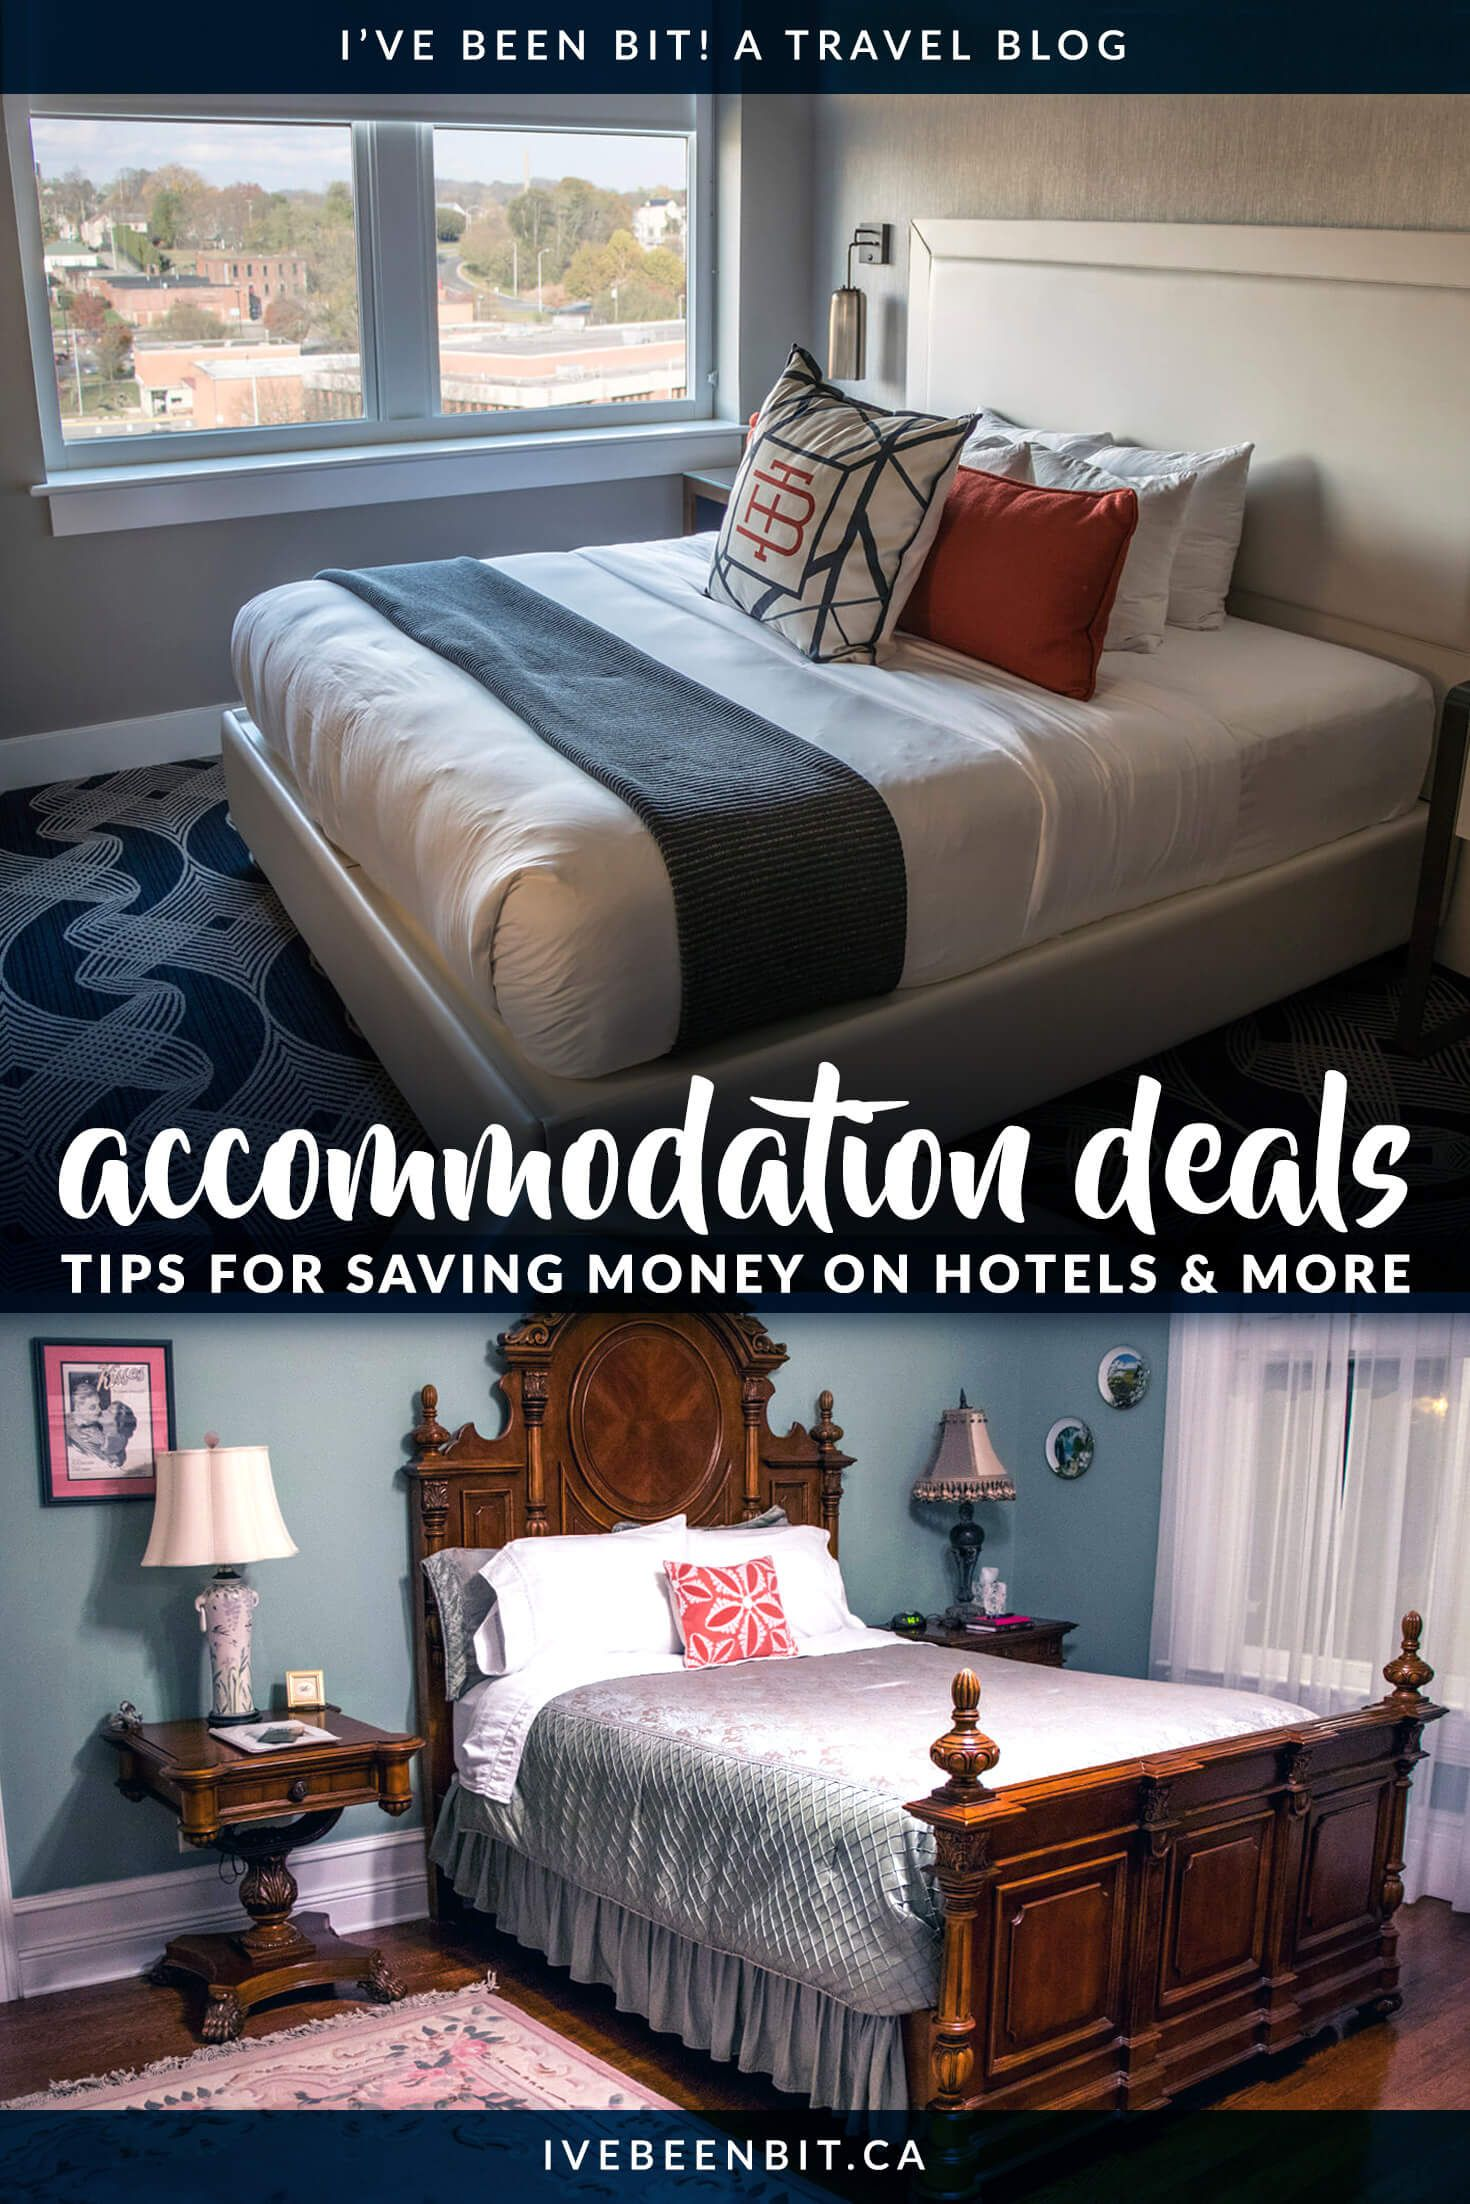 Travelling on a budget? You don't want to miss these tips on saving money on hotels, Airbnb and more. See how you can keep more money in your pocket as you travel. There is no magic website that will find you the best hotel deals, but this guide has tips for saving money on accommodation!   #Travel #Accommodation #Hotels #HotelDeals   IveBeenBit.ca